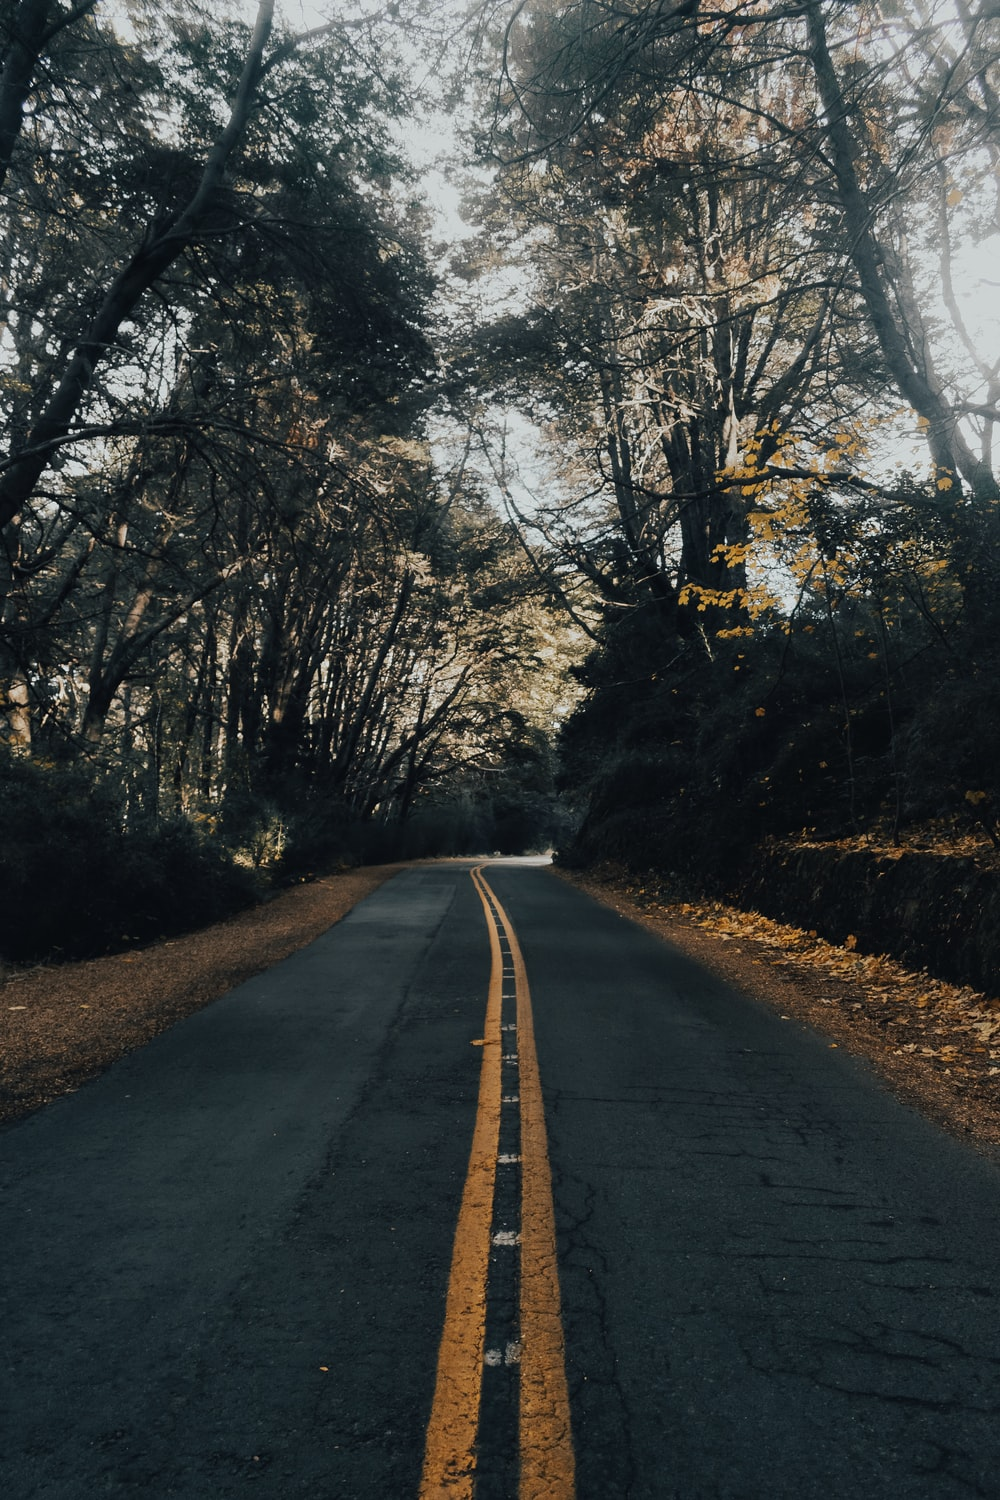 road near trees during day